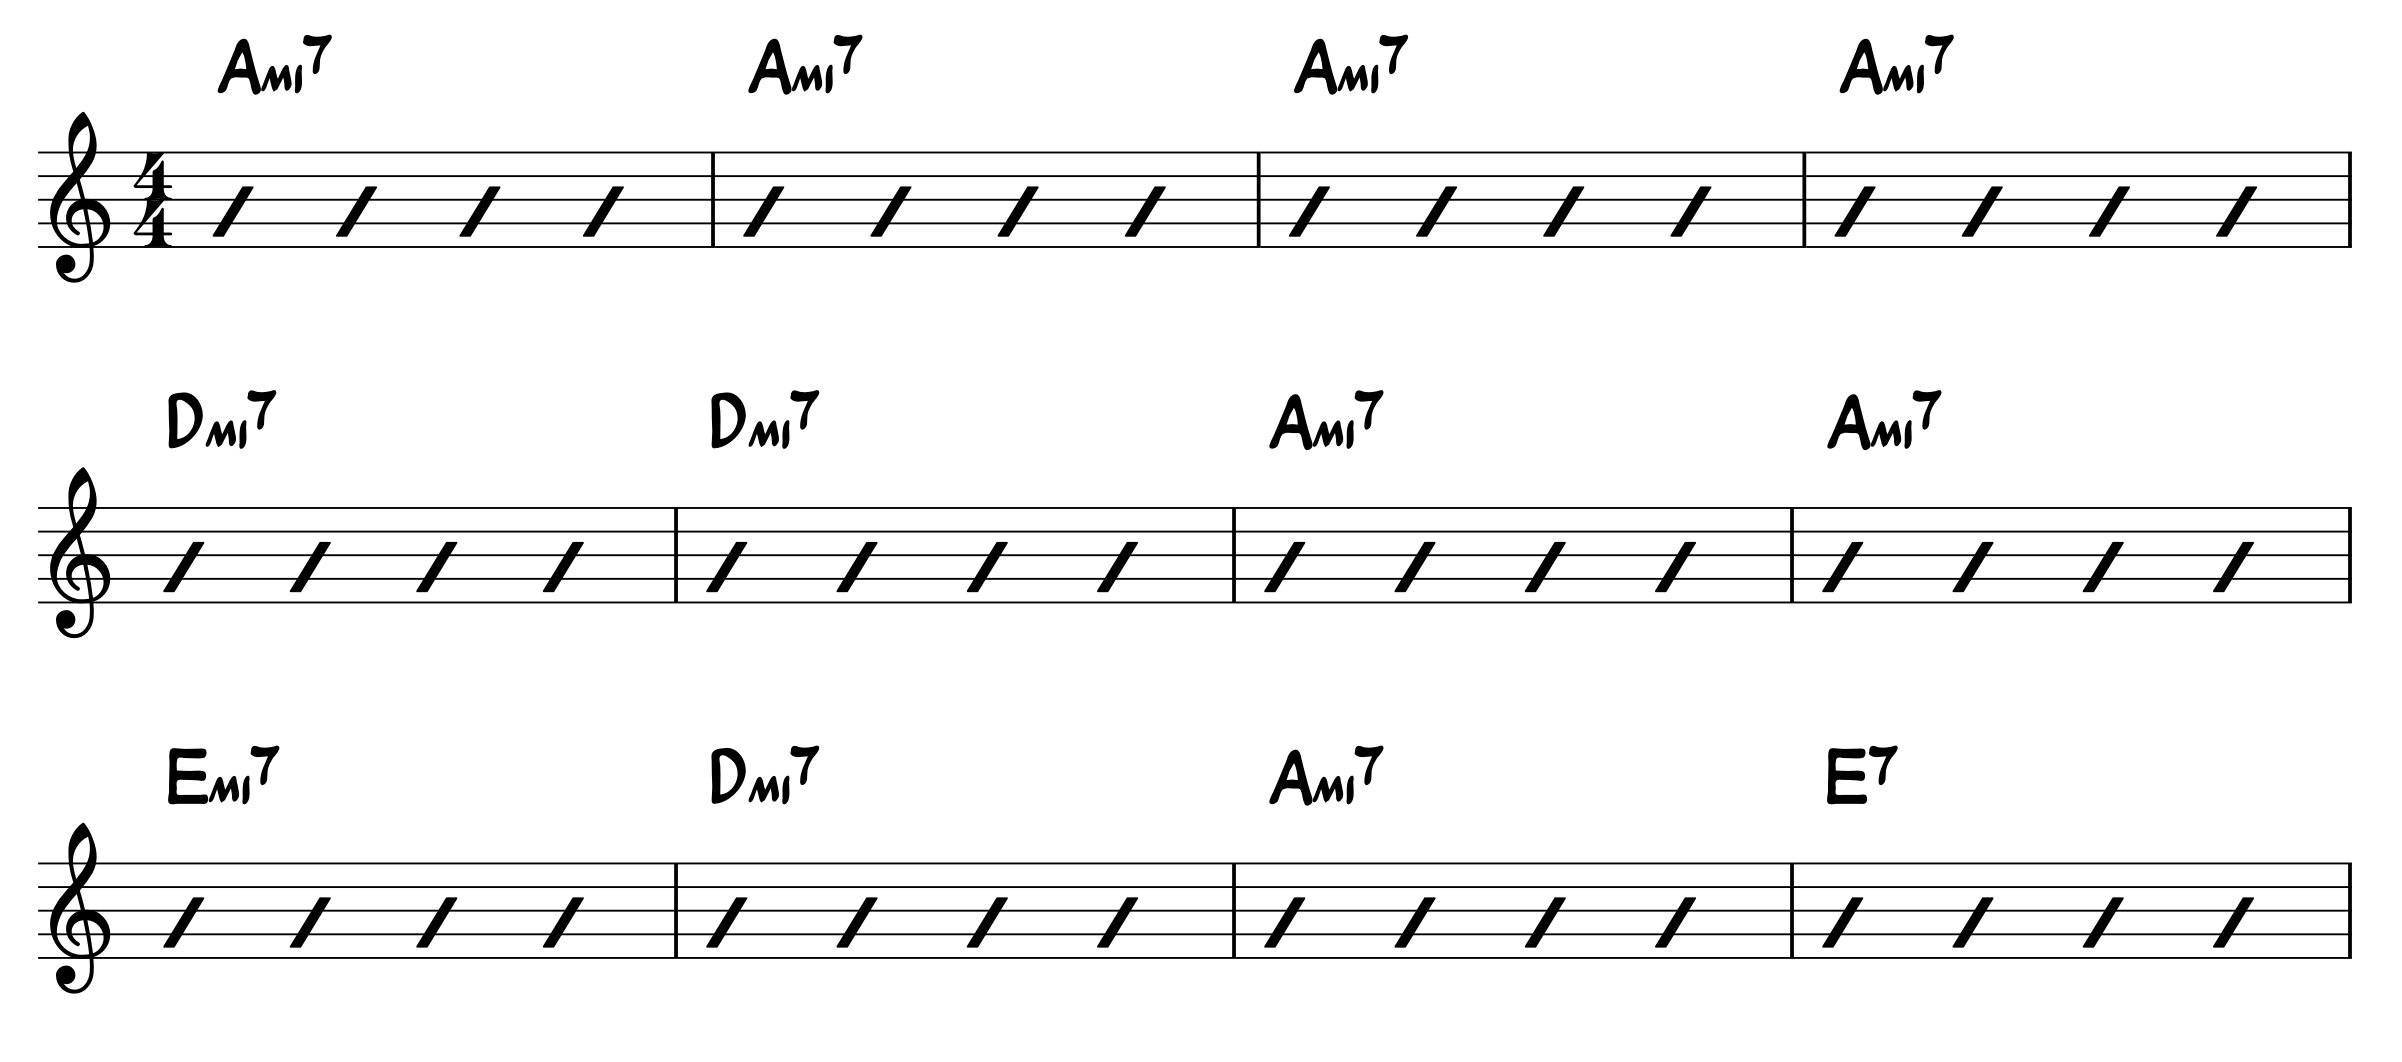 A minor blues progression form 1